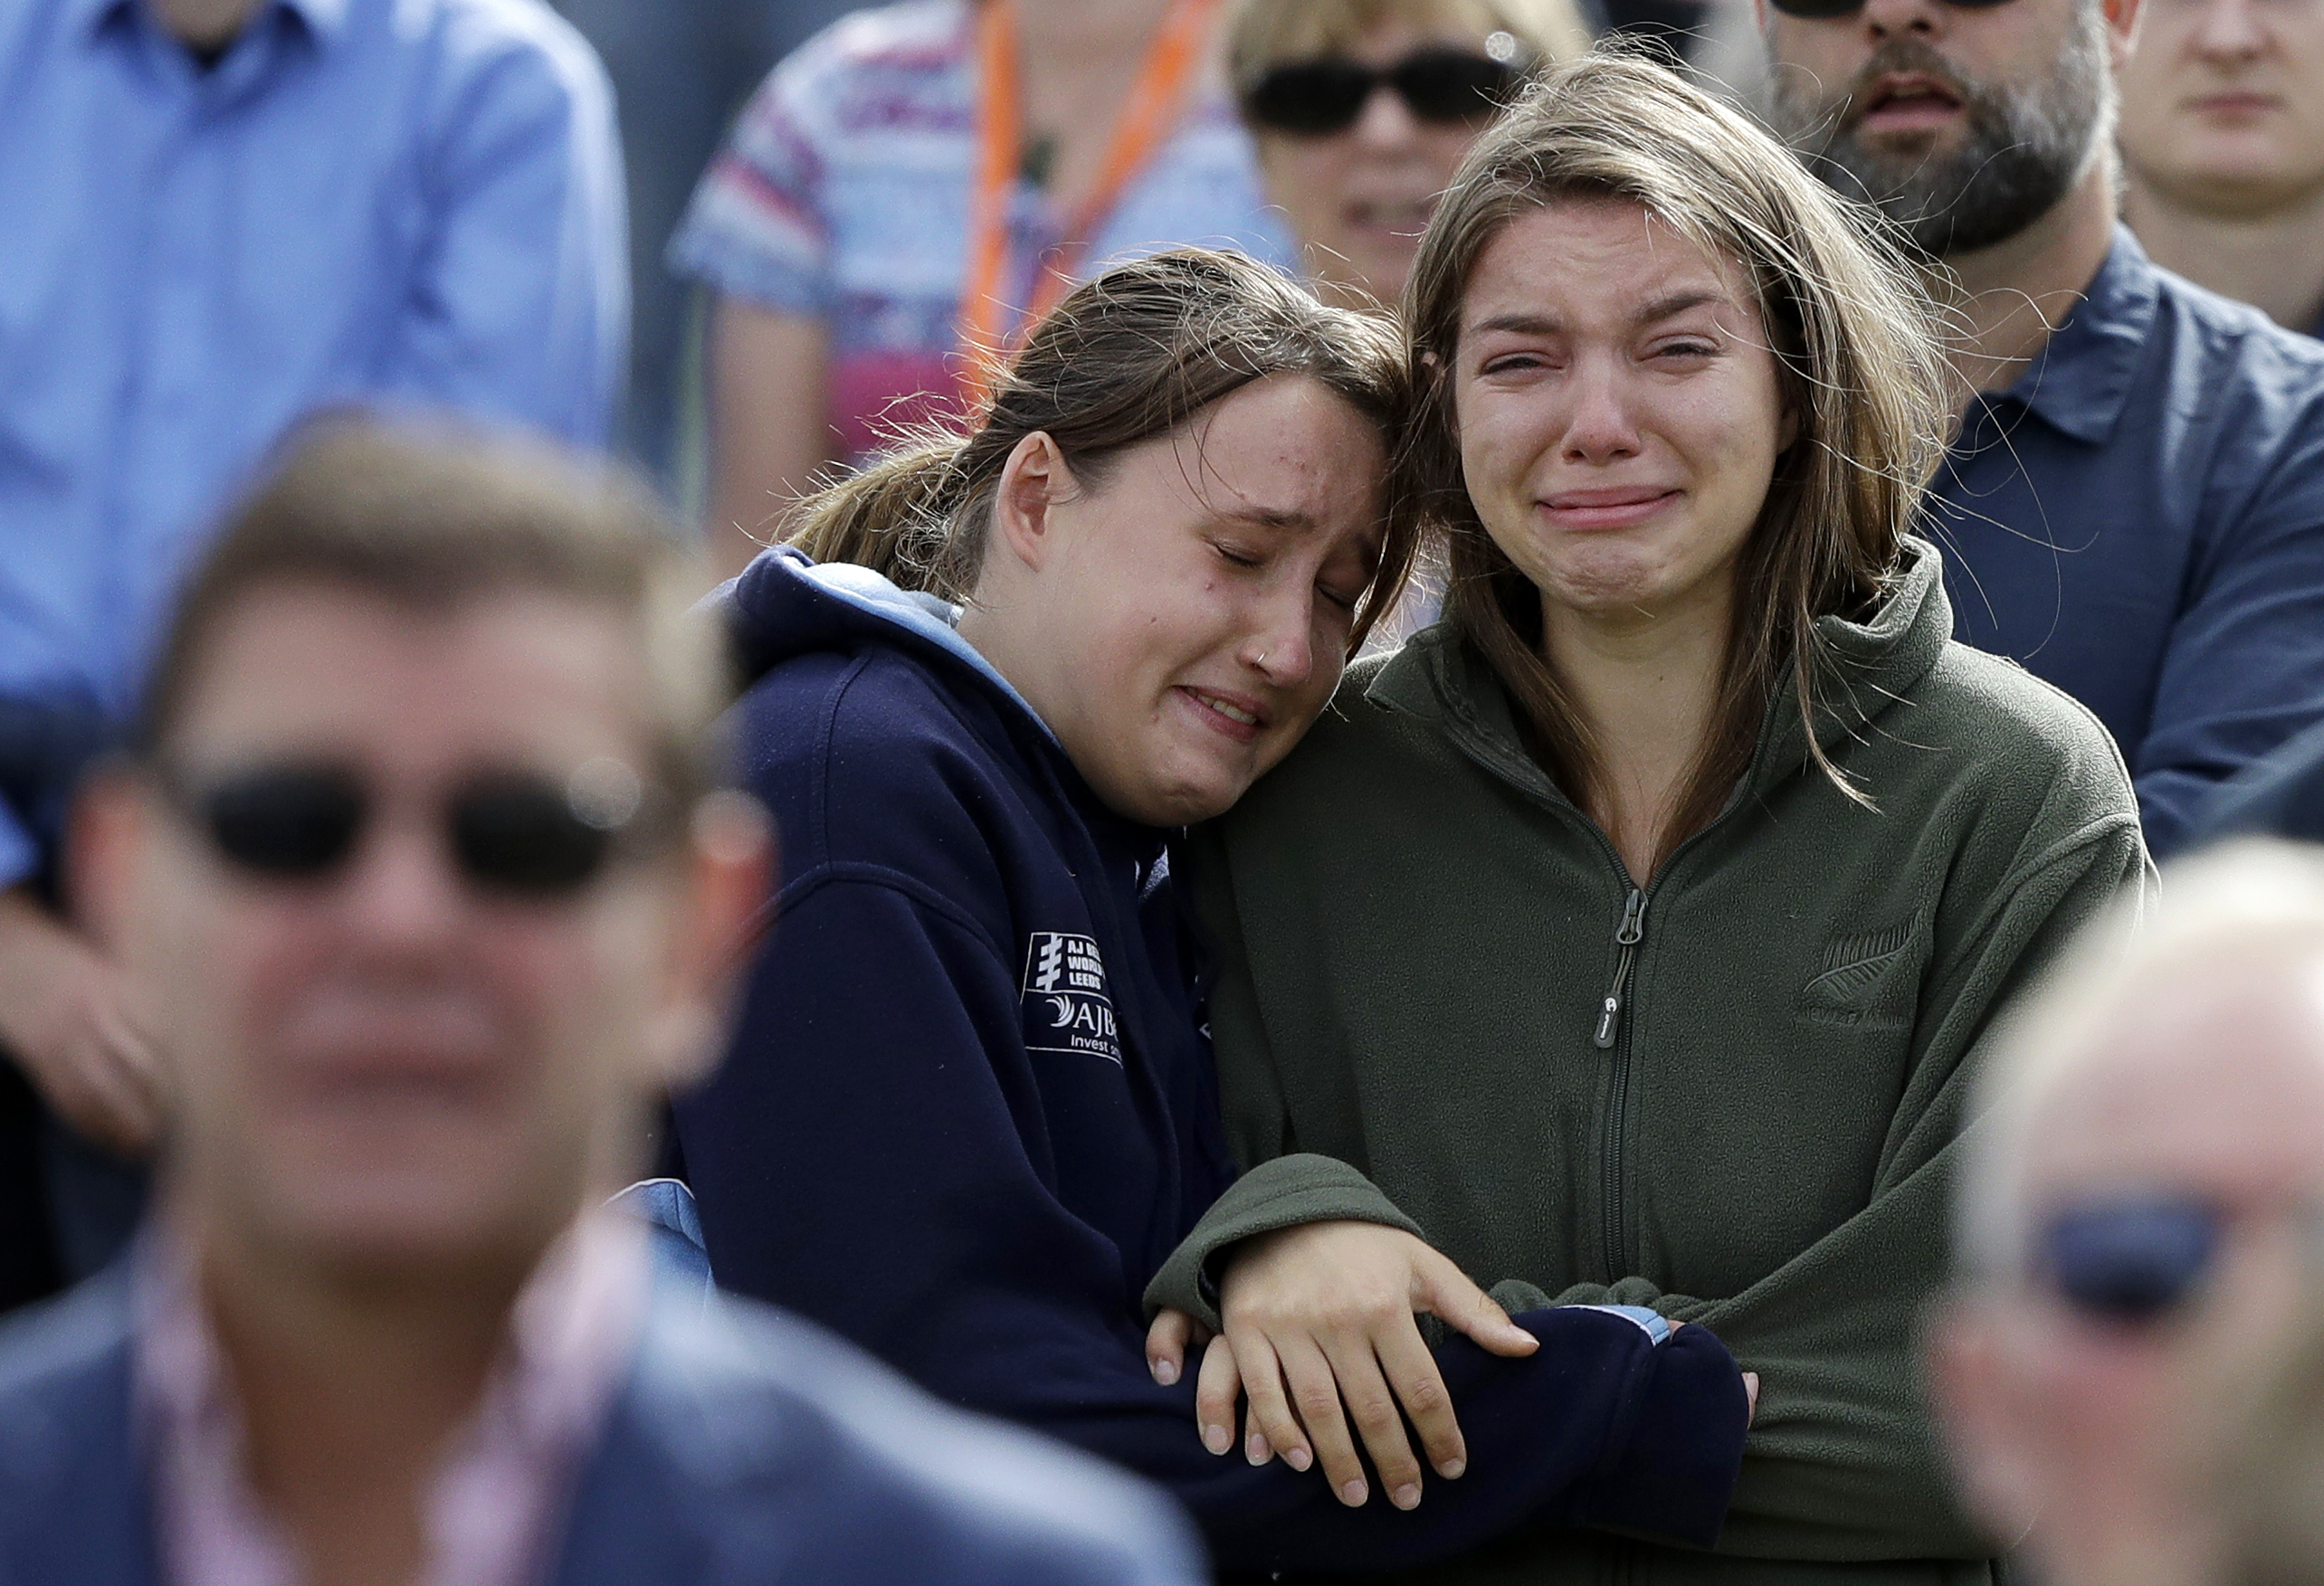 In this Friday, March 29, 2019, file photo, women react as the New Zealand national anthem is sung during a national remembrance service in Hagley Park for the victims of the March 15 mosque terrorist attack in Christchurch, New Zealand. (AP Photo/Mark Baker, File)